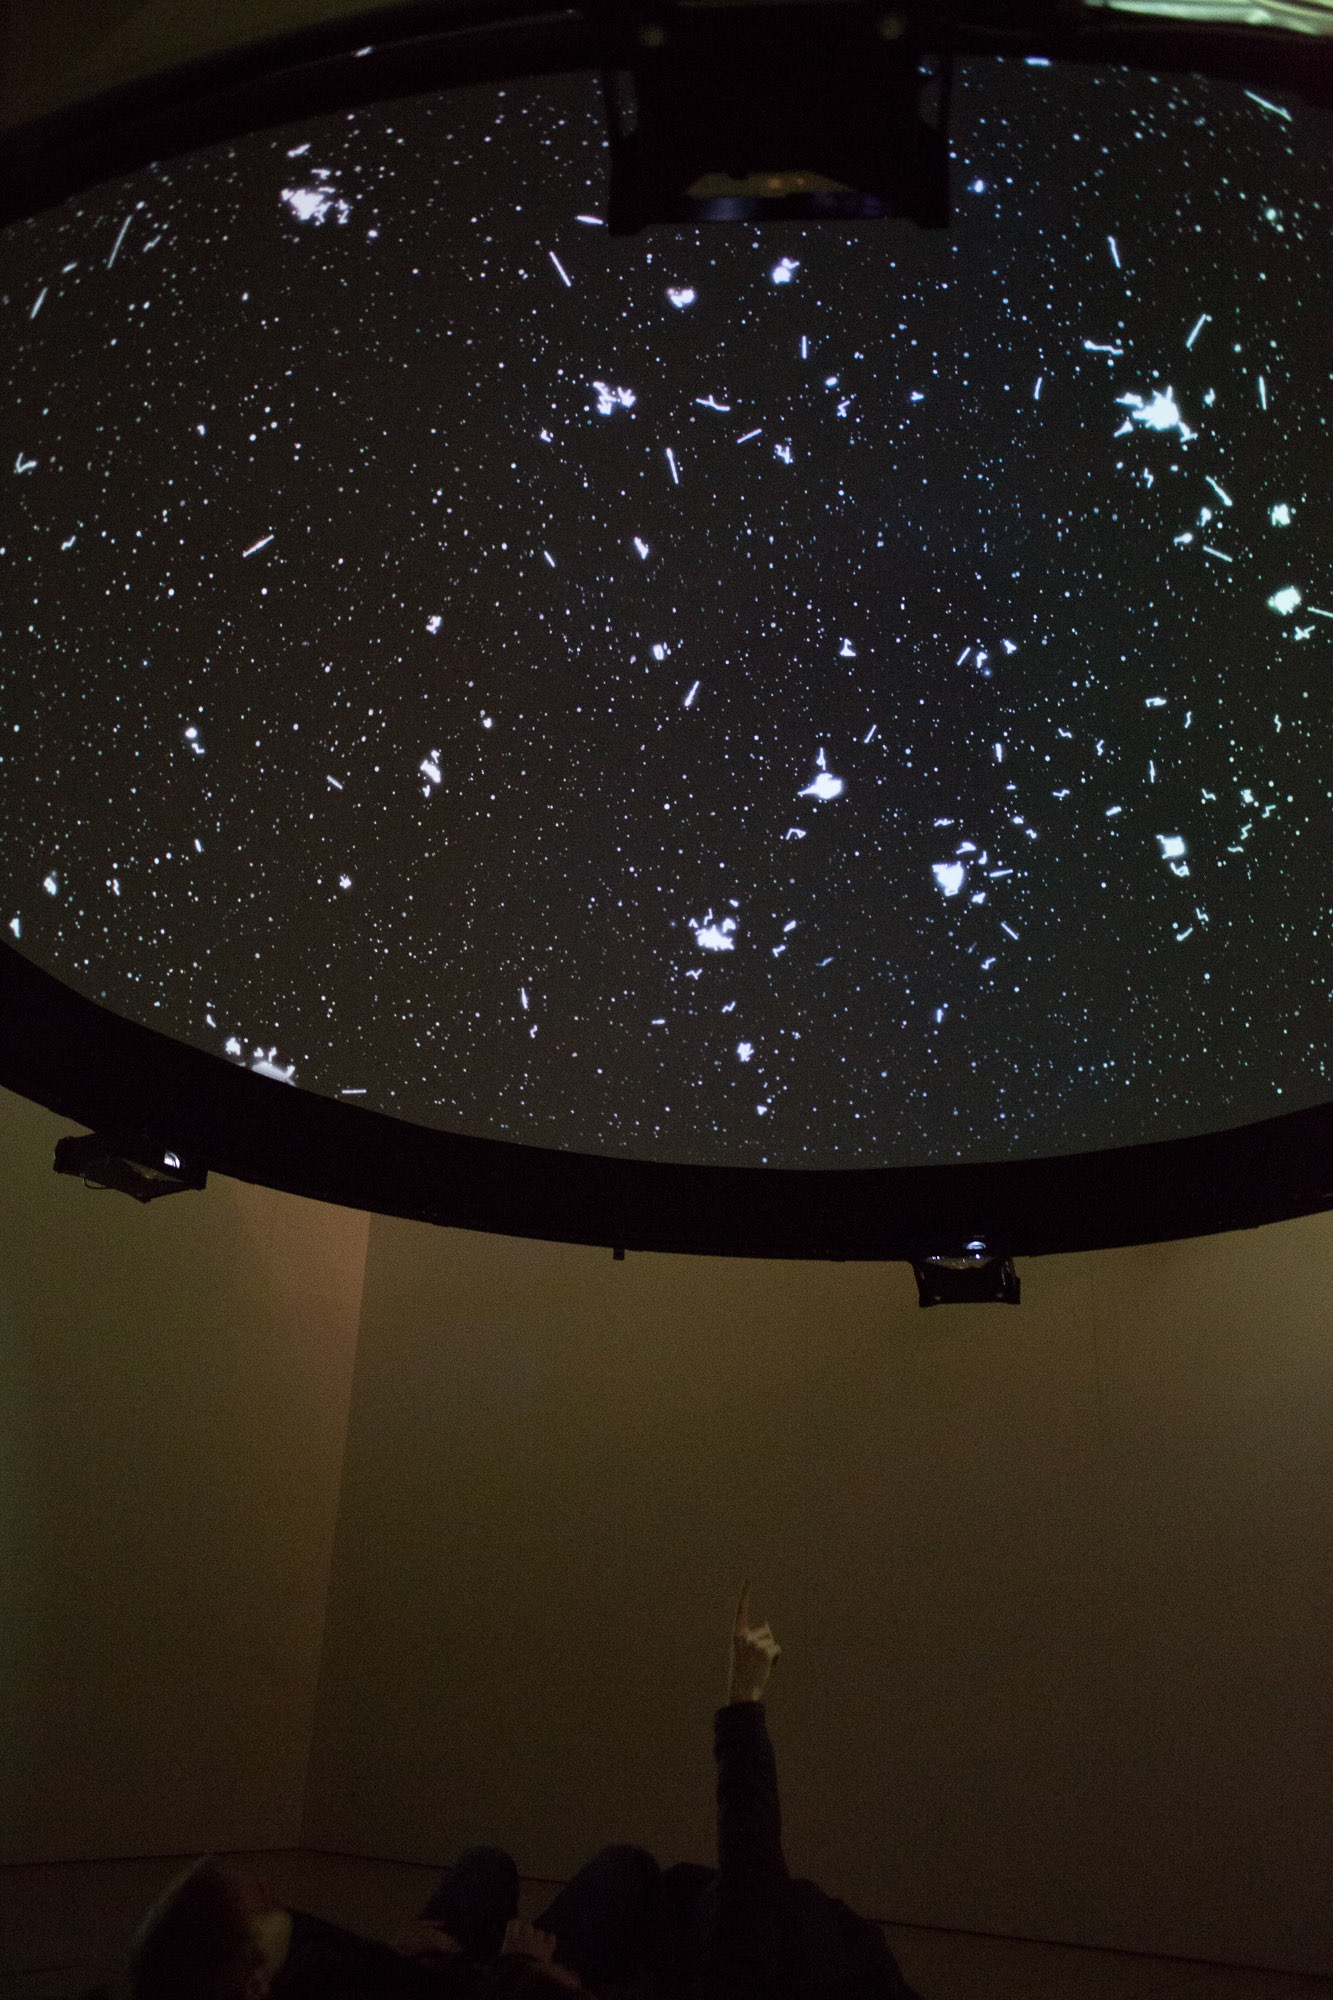 'Black Shoals: Dark Matter' - a stock market planetarium created by Lise Autogena and Joshua Portway, Big Bang Data exhibition, Somerset House, London. Photo by Joshua Portway, 2016